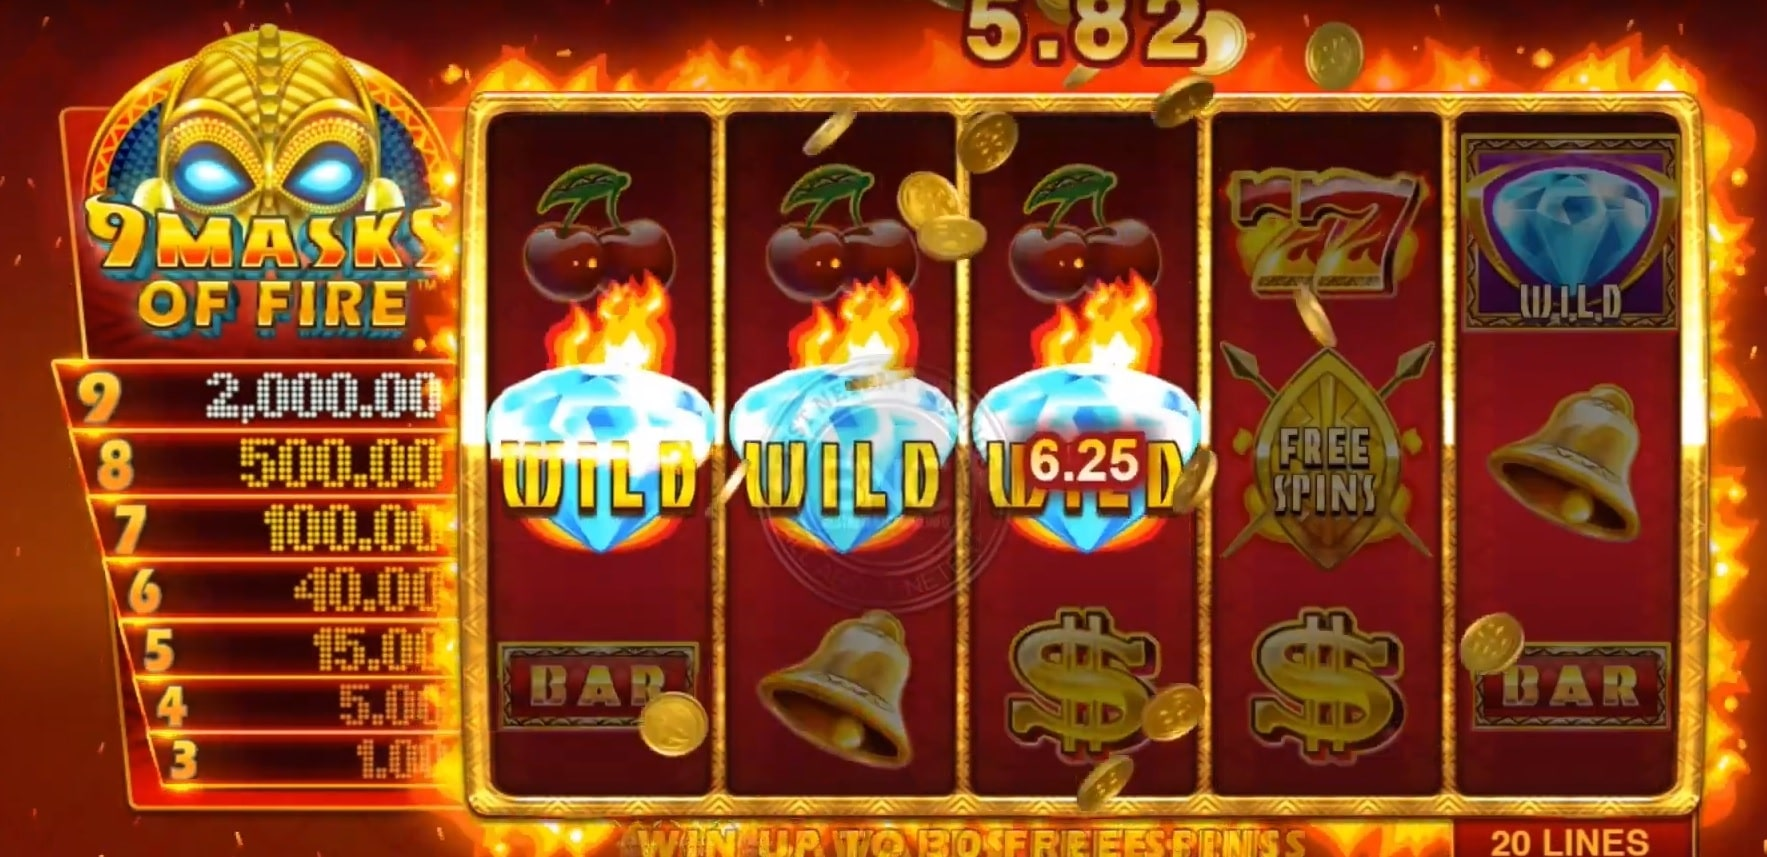 Layout of the 9 Masks of Fire slot that ended up on the top new slots in October 2019.